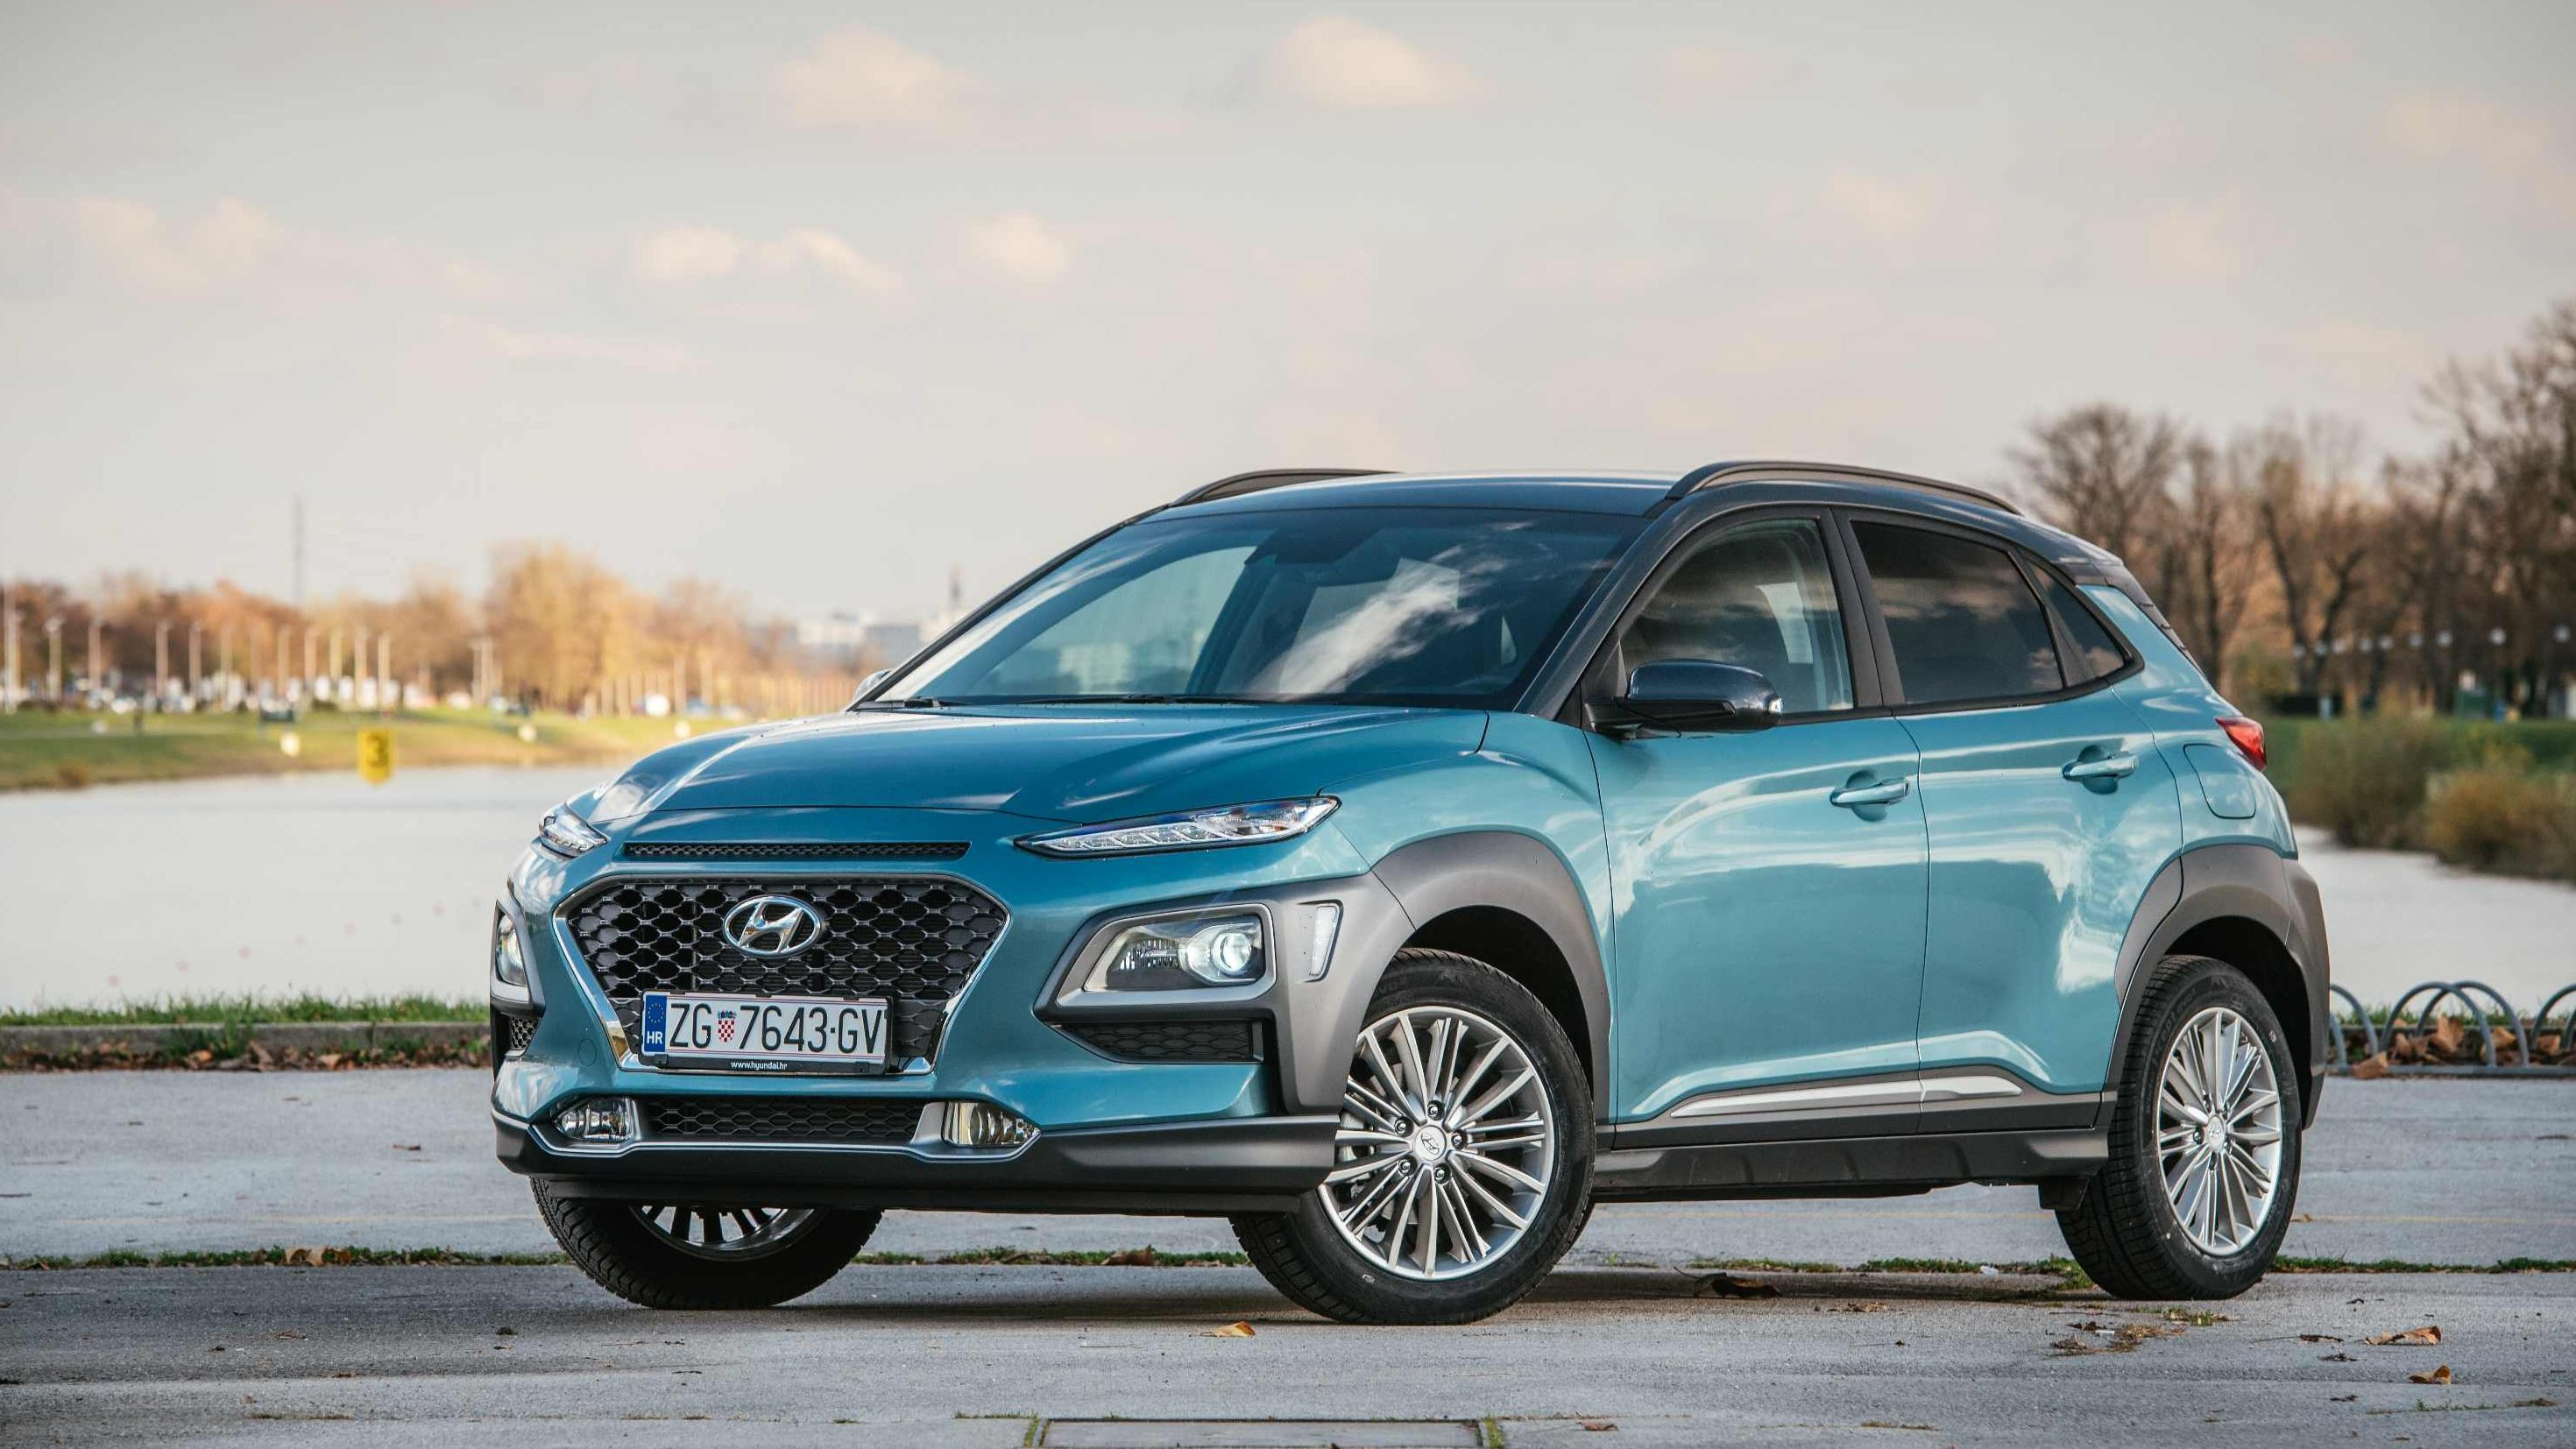 Image for Test Hyundai Kona 1,6 CRDI Rock it – dobar stari dizel